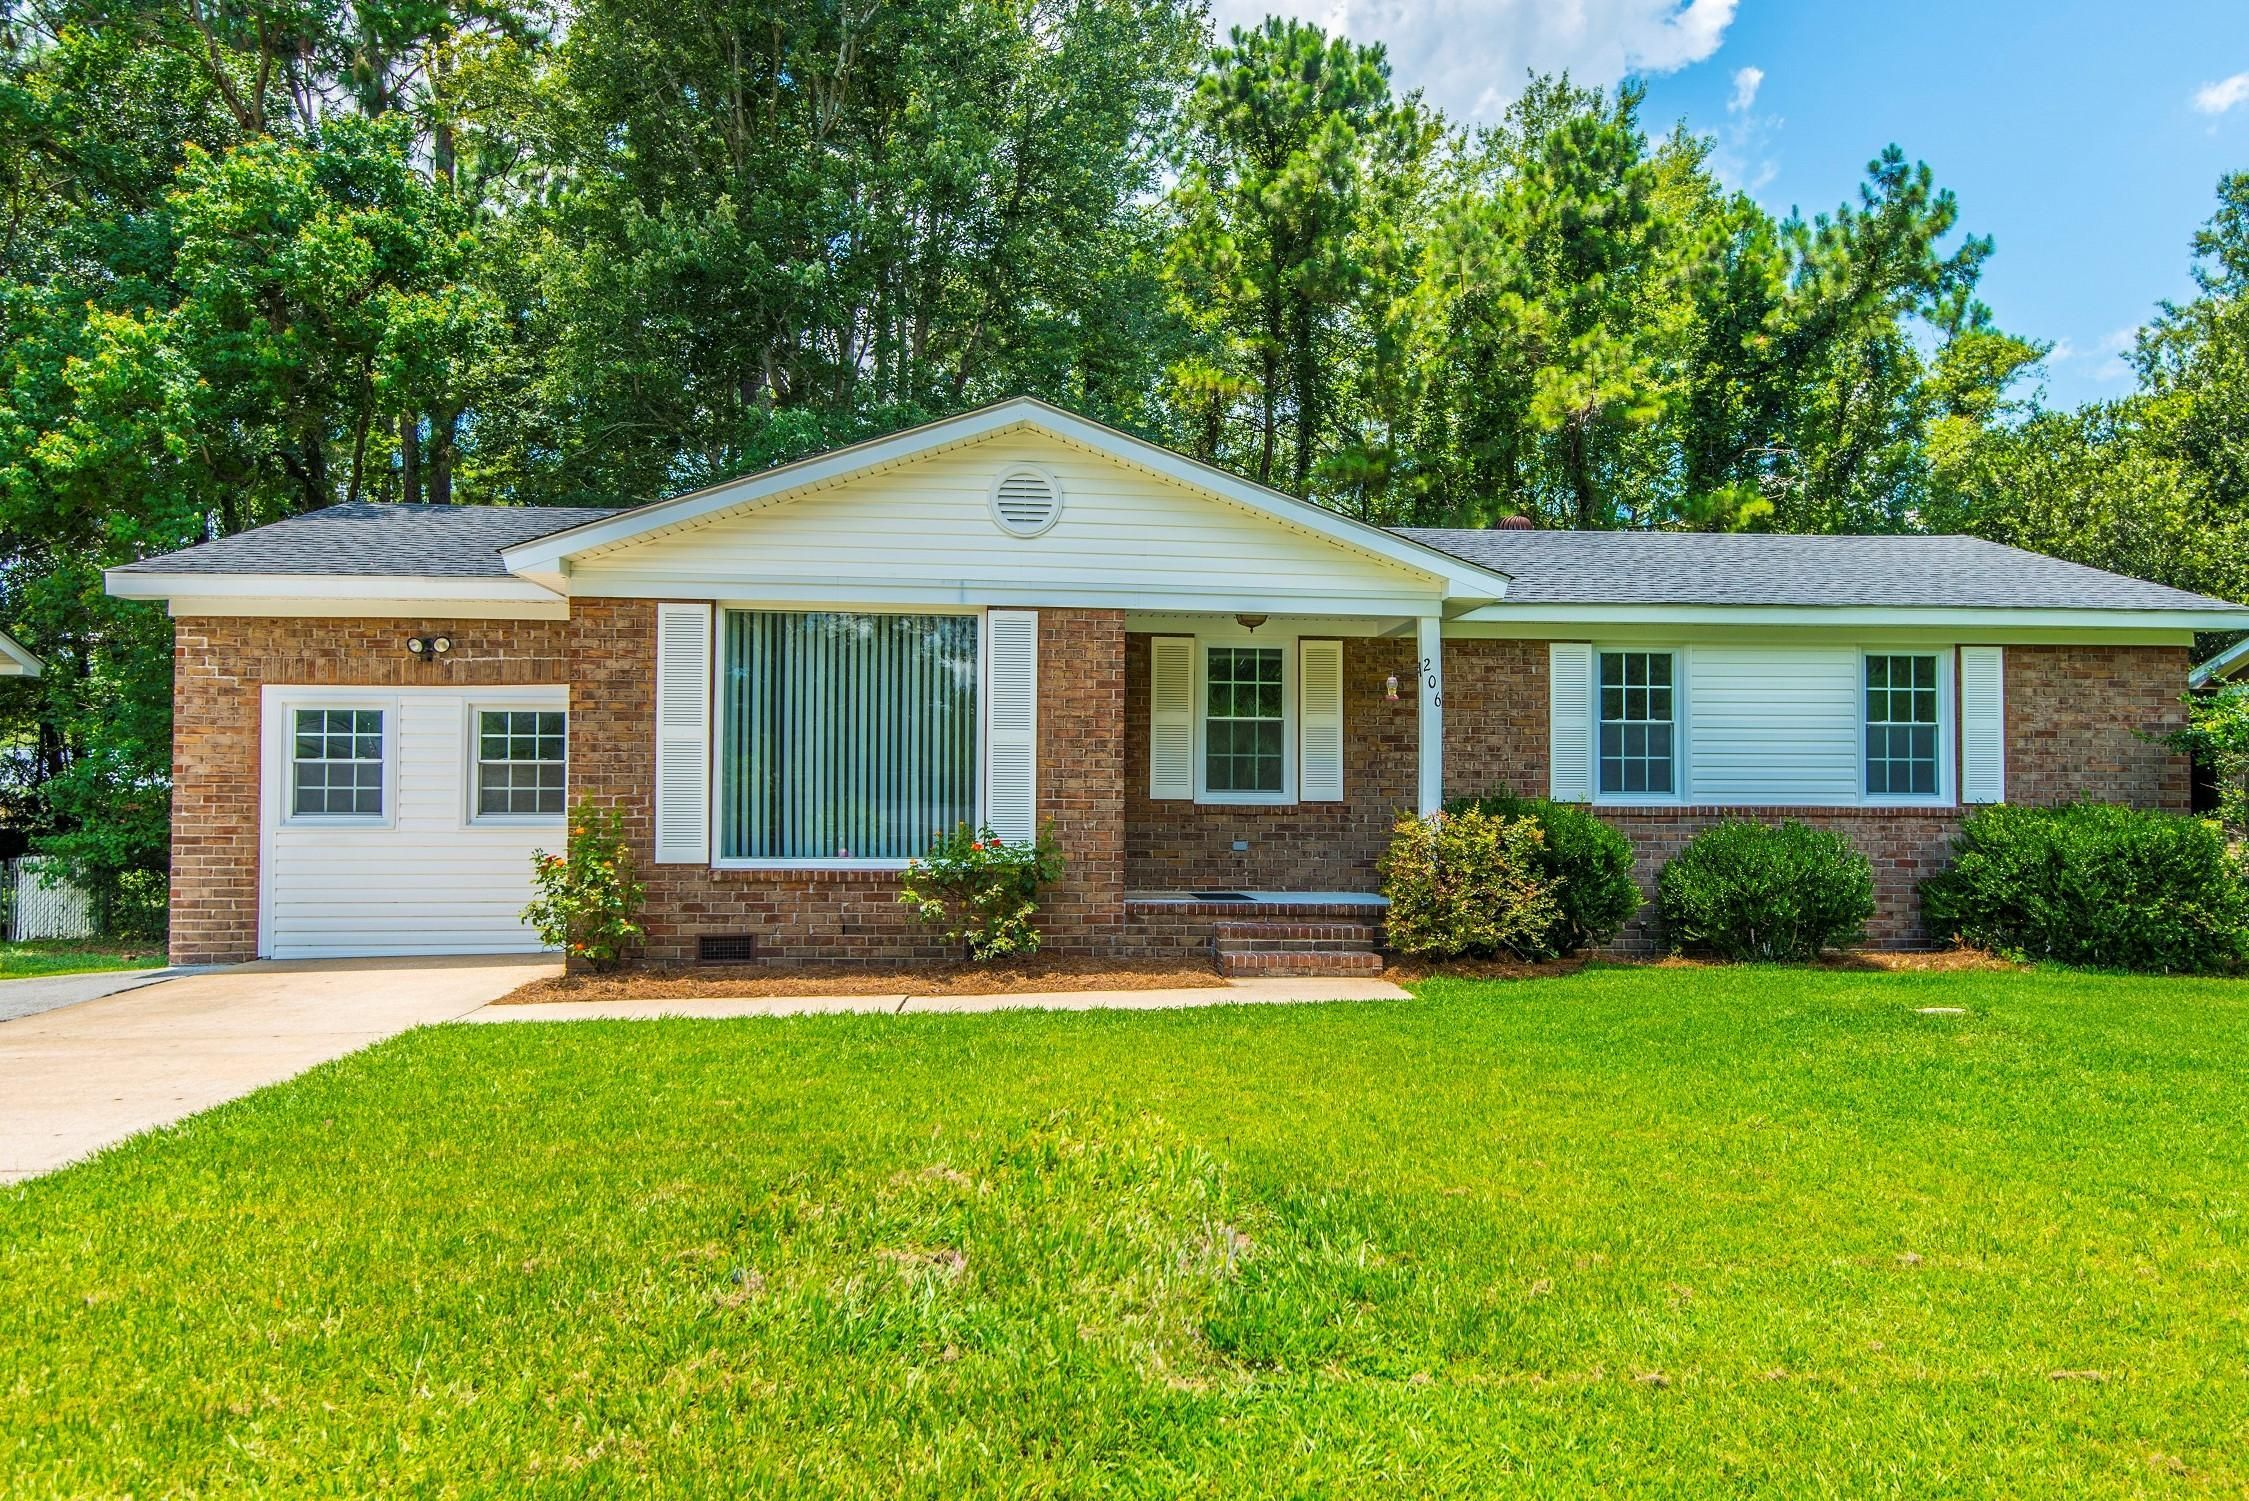 New to the market in Ladson, SC! Turnkey brick ranch